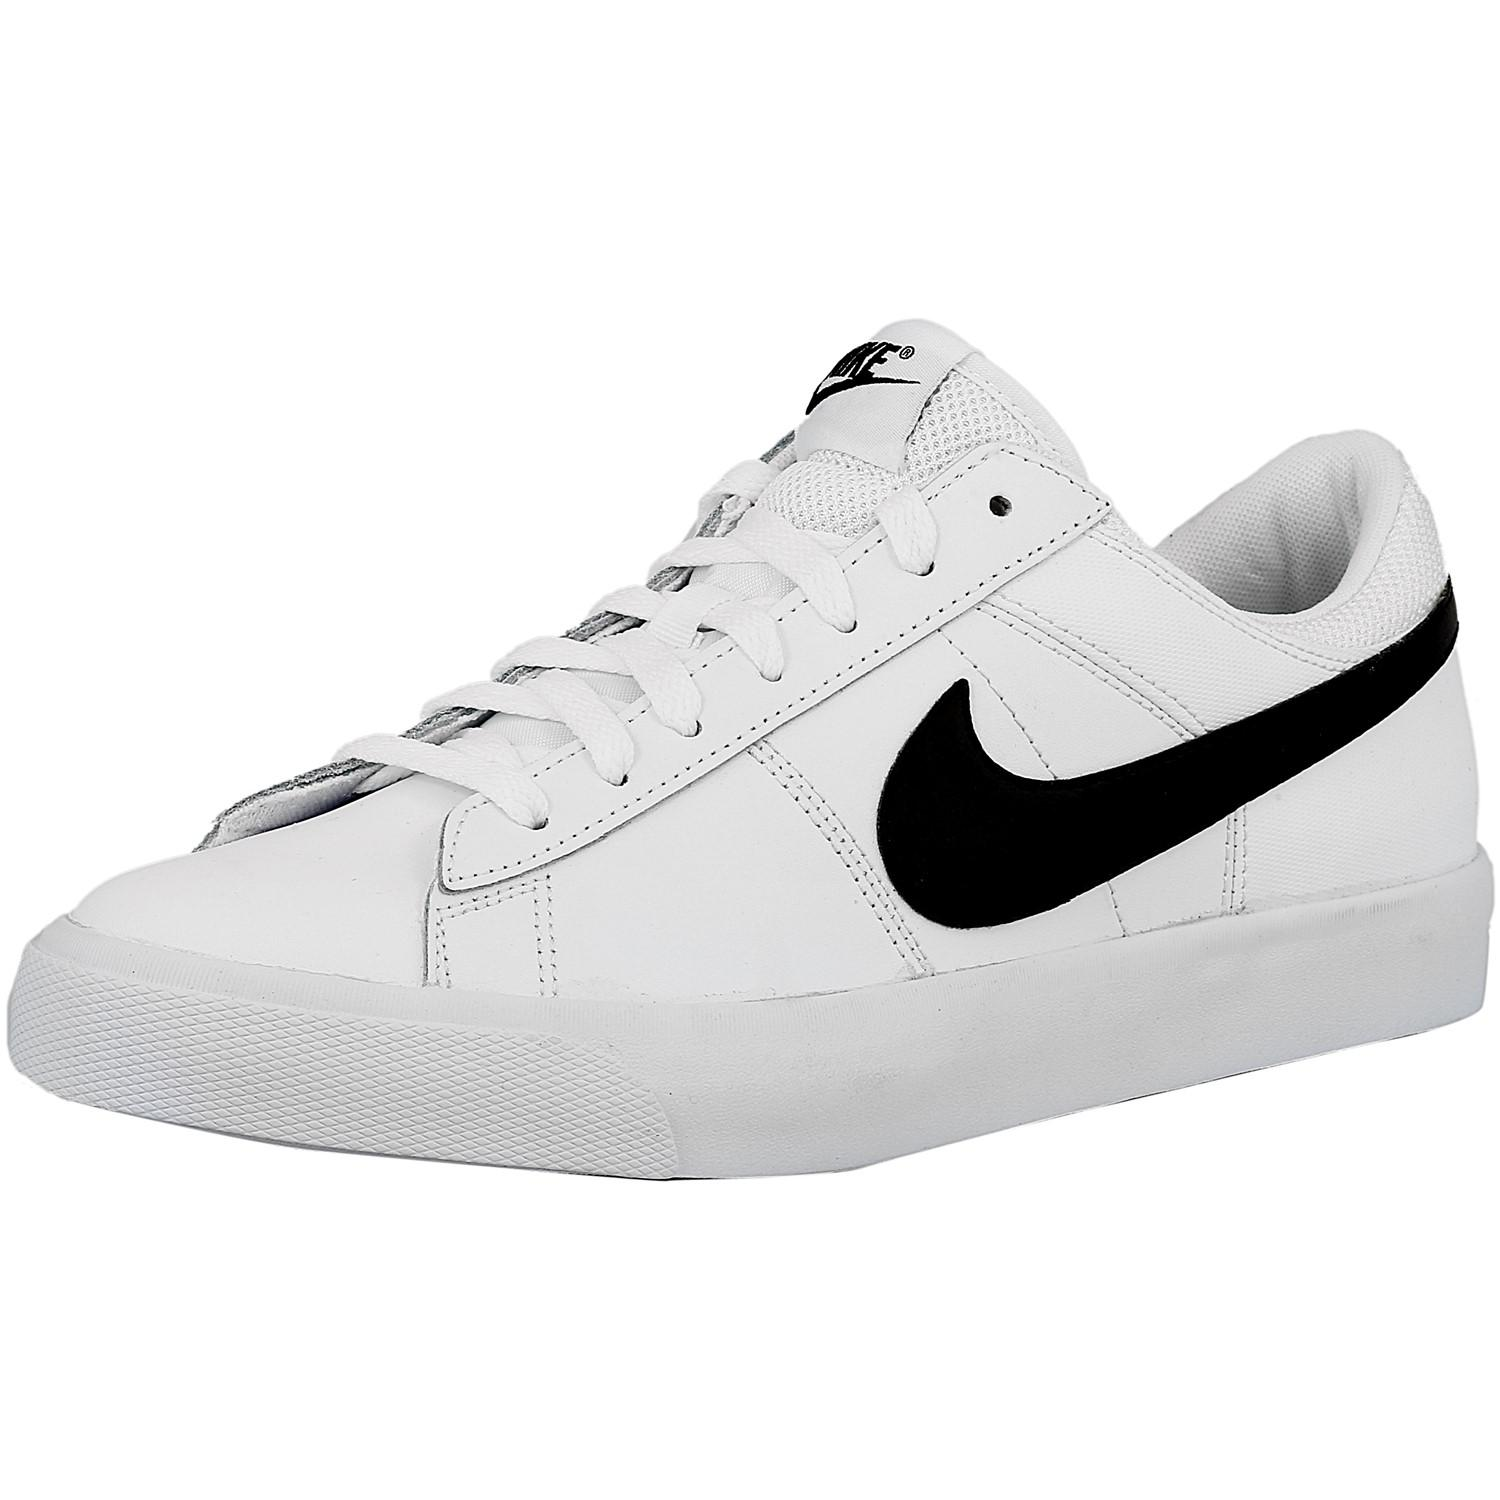 online retailer de460 ddf29 nike-White-Black-Black-White-Match-Supreme-White-Black-black-white-Ankle-high-Leather- Tennis-Shoe.jpeg